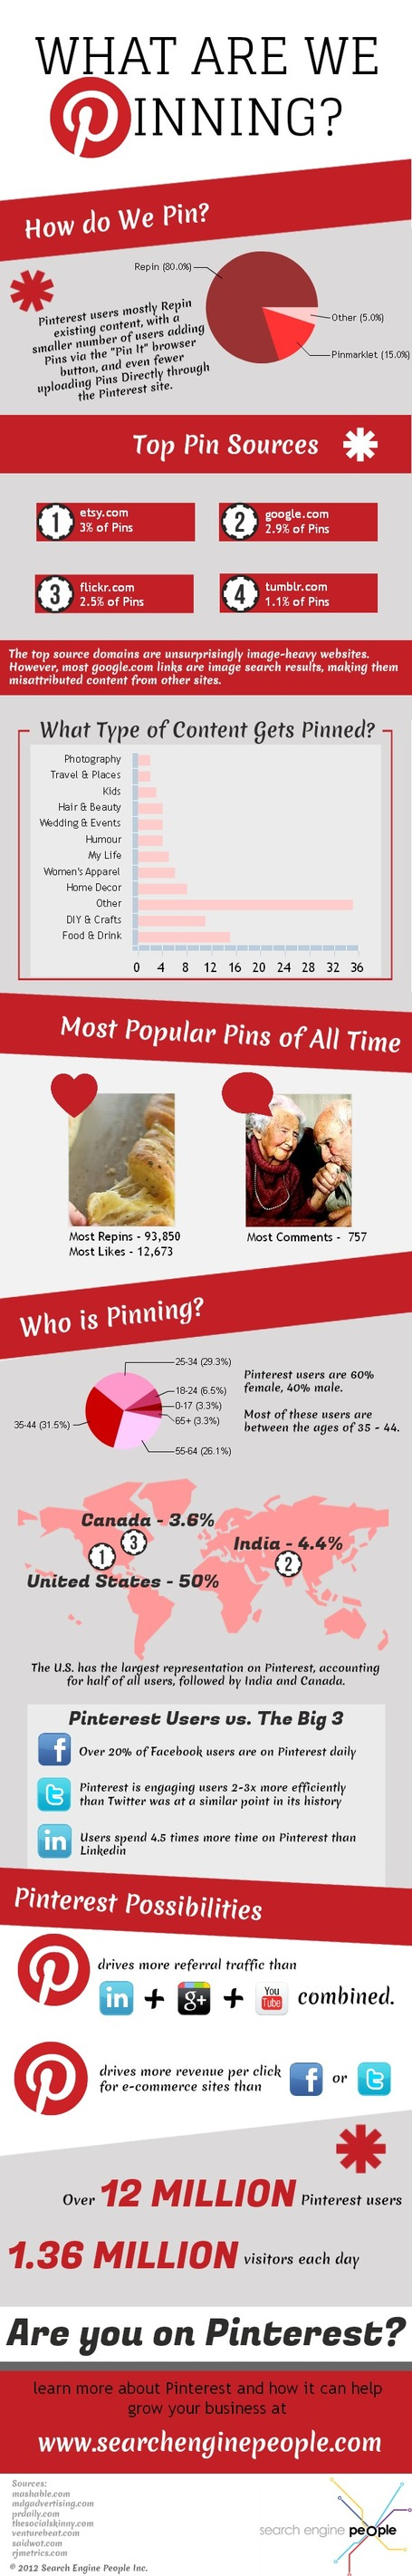 What Are We Pinning? [Infographic] | Surviving Social Chaos | Scoop.it